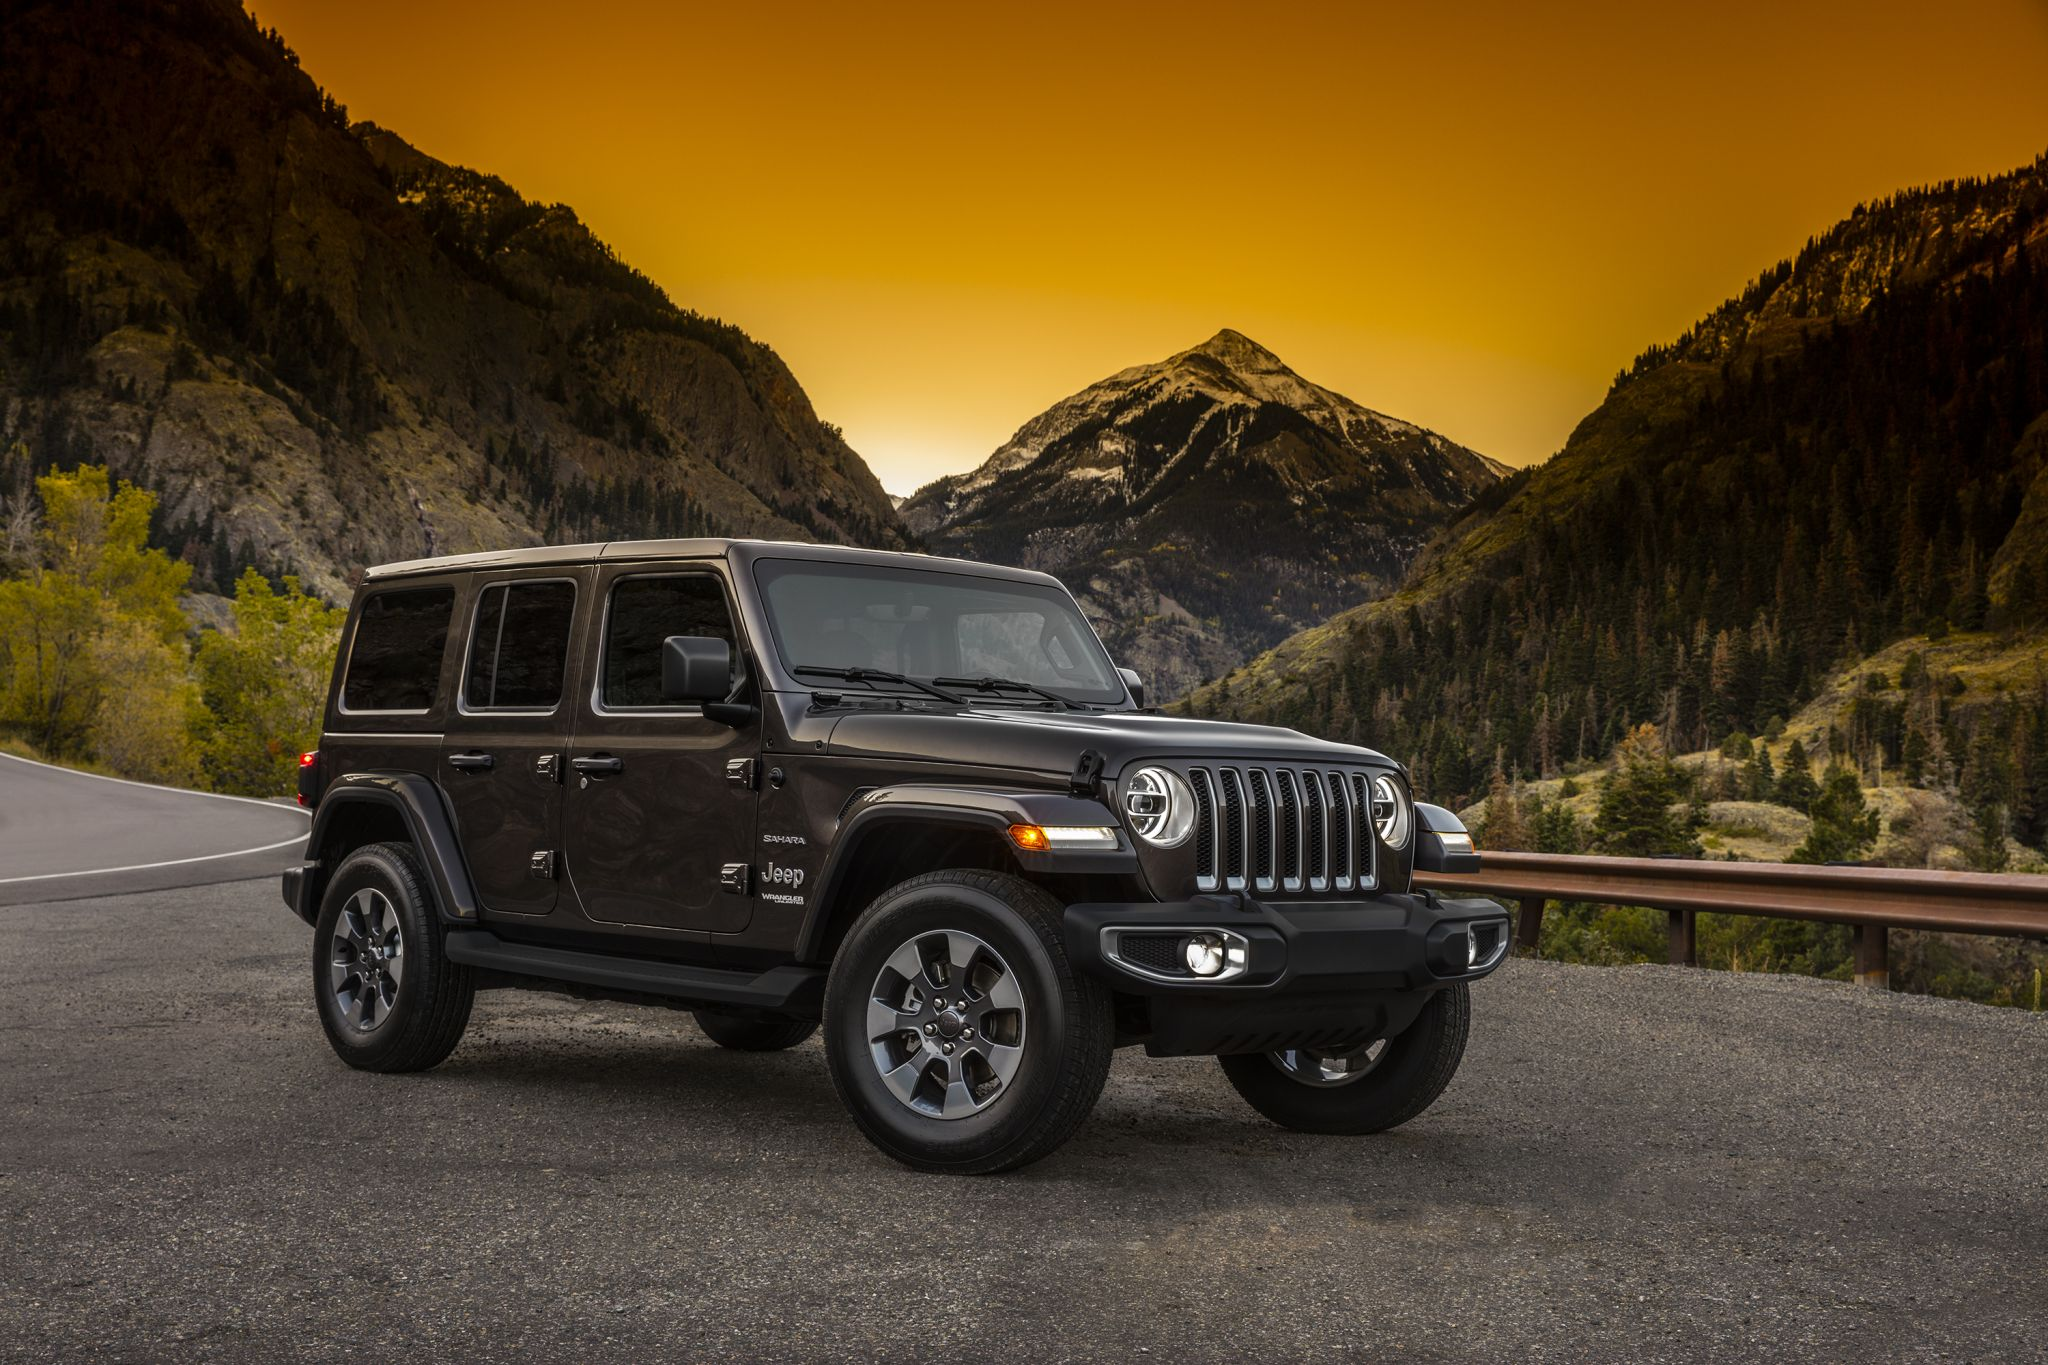 Jeep unveils 2018 Wrangler and its throwback look